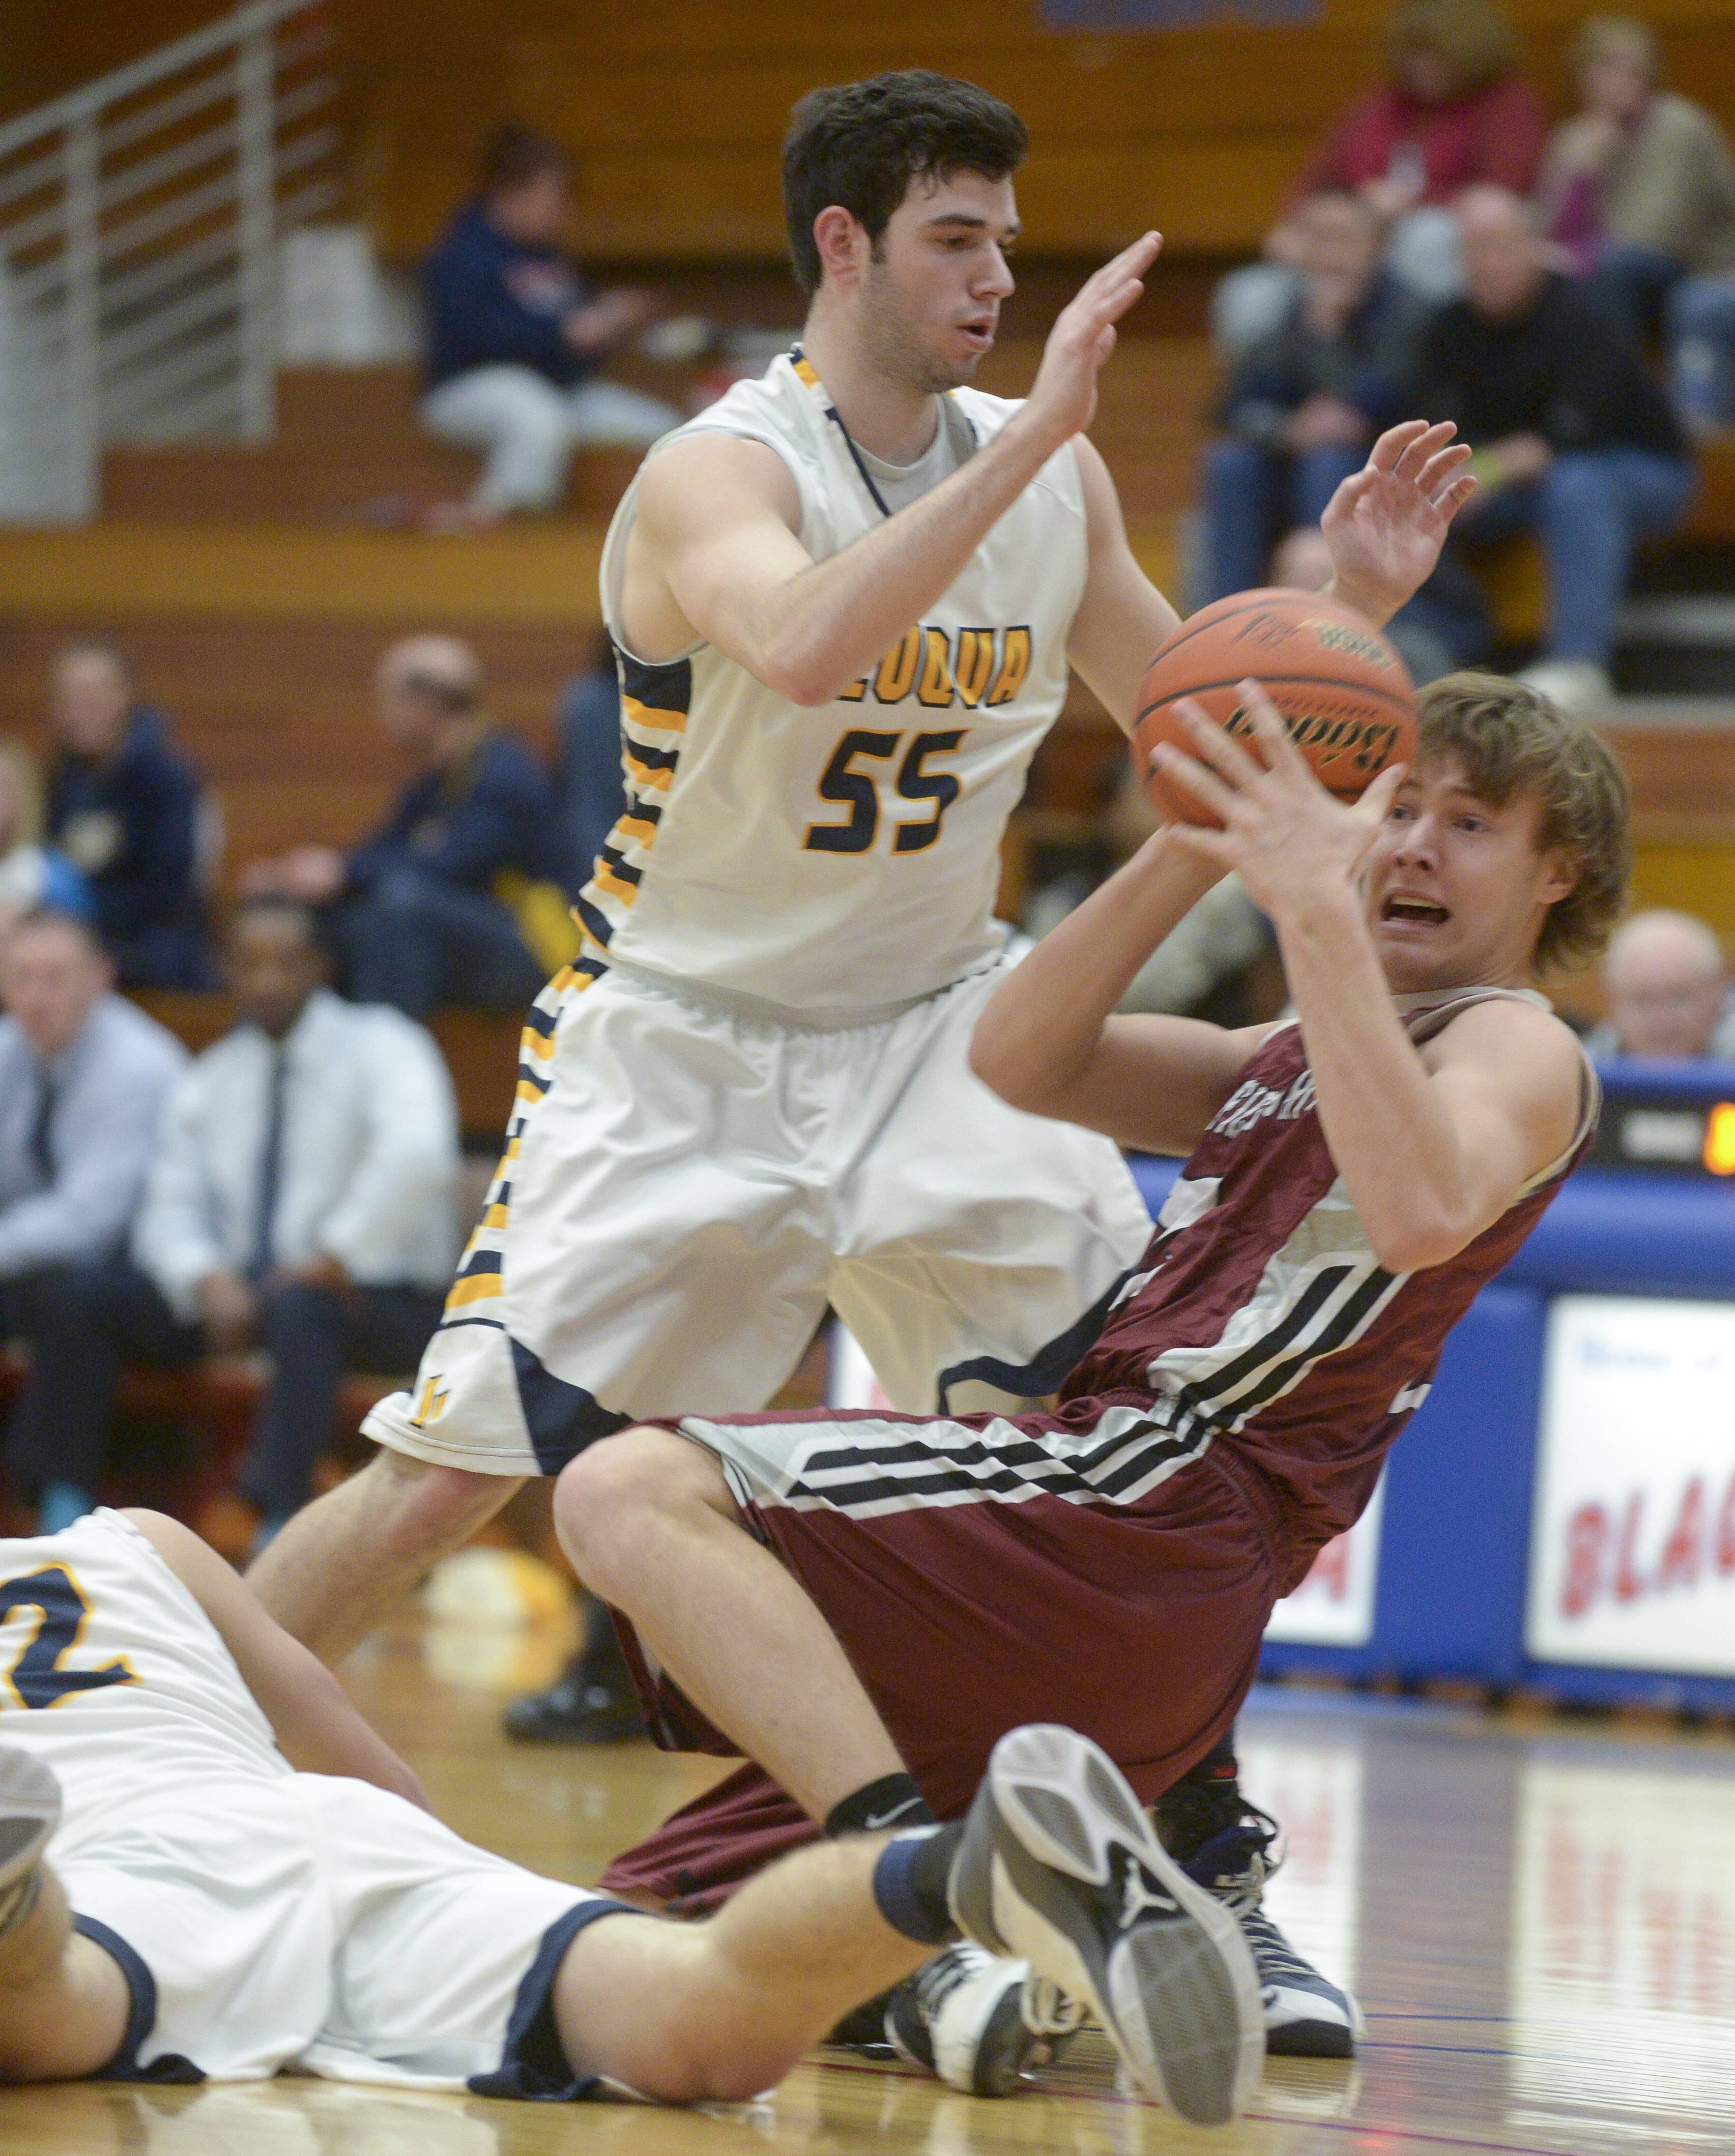 Neuqua Valley's Zach Incaudo looks on as Plainfield North's Kyle Speas takes a tumble during Wednesday's Class 4A West Aurora regional semifinal game.